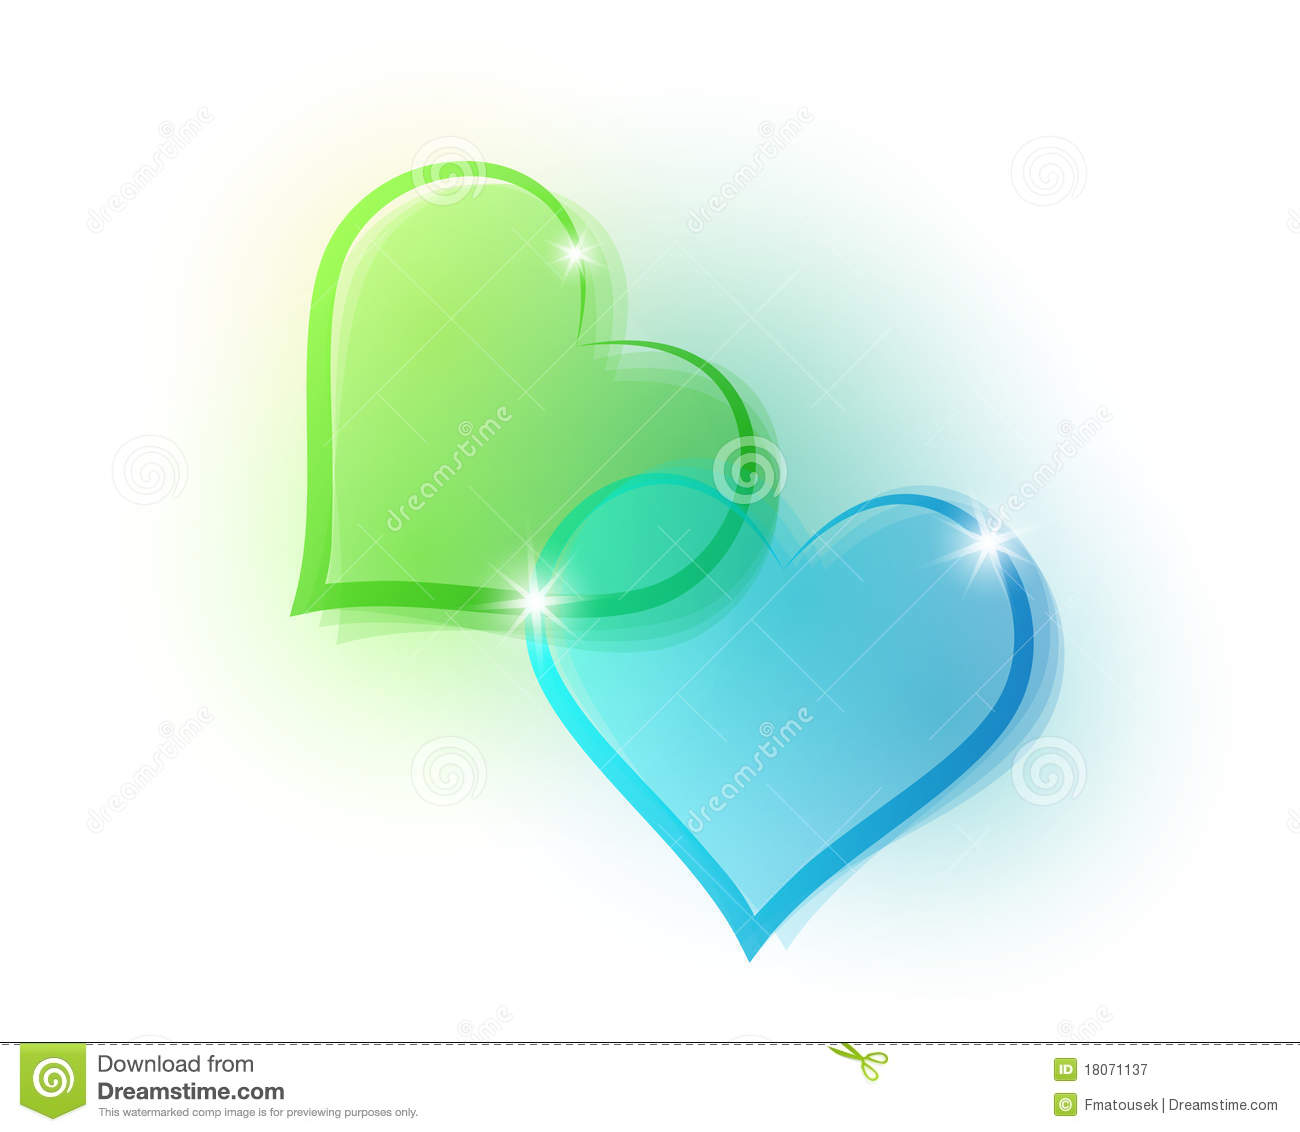 Blue And Green Hearts Stock Vector Illustration Of Concept 18071137